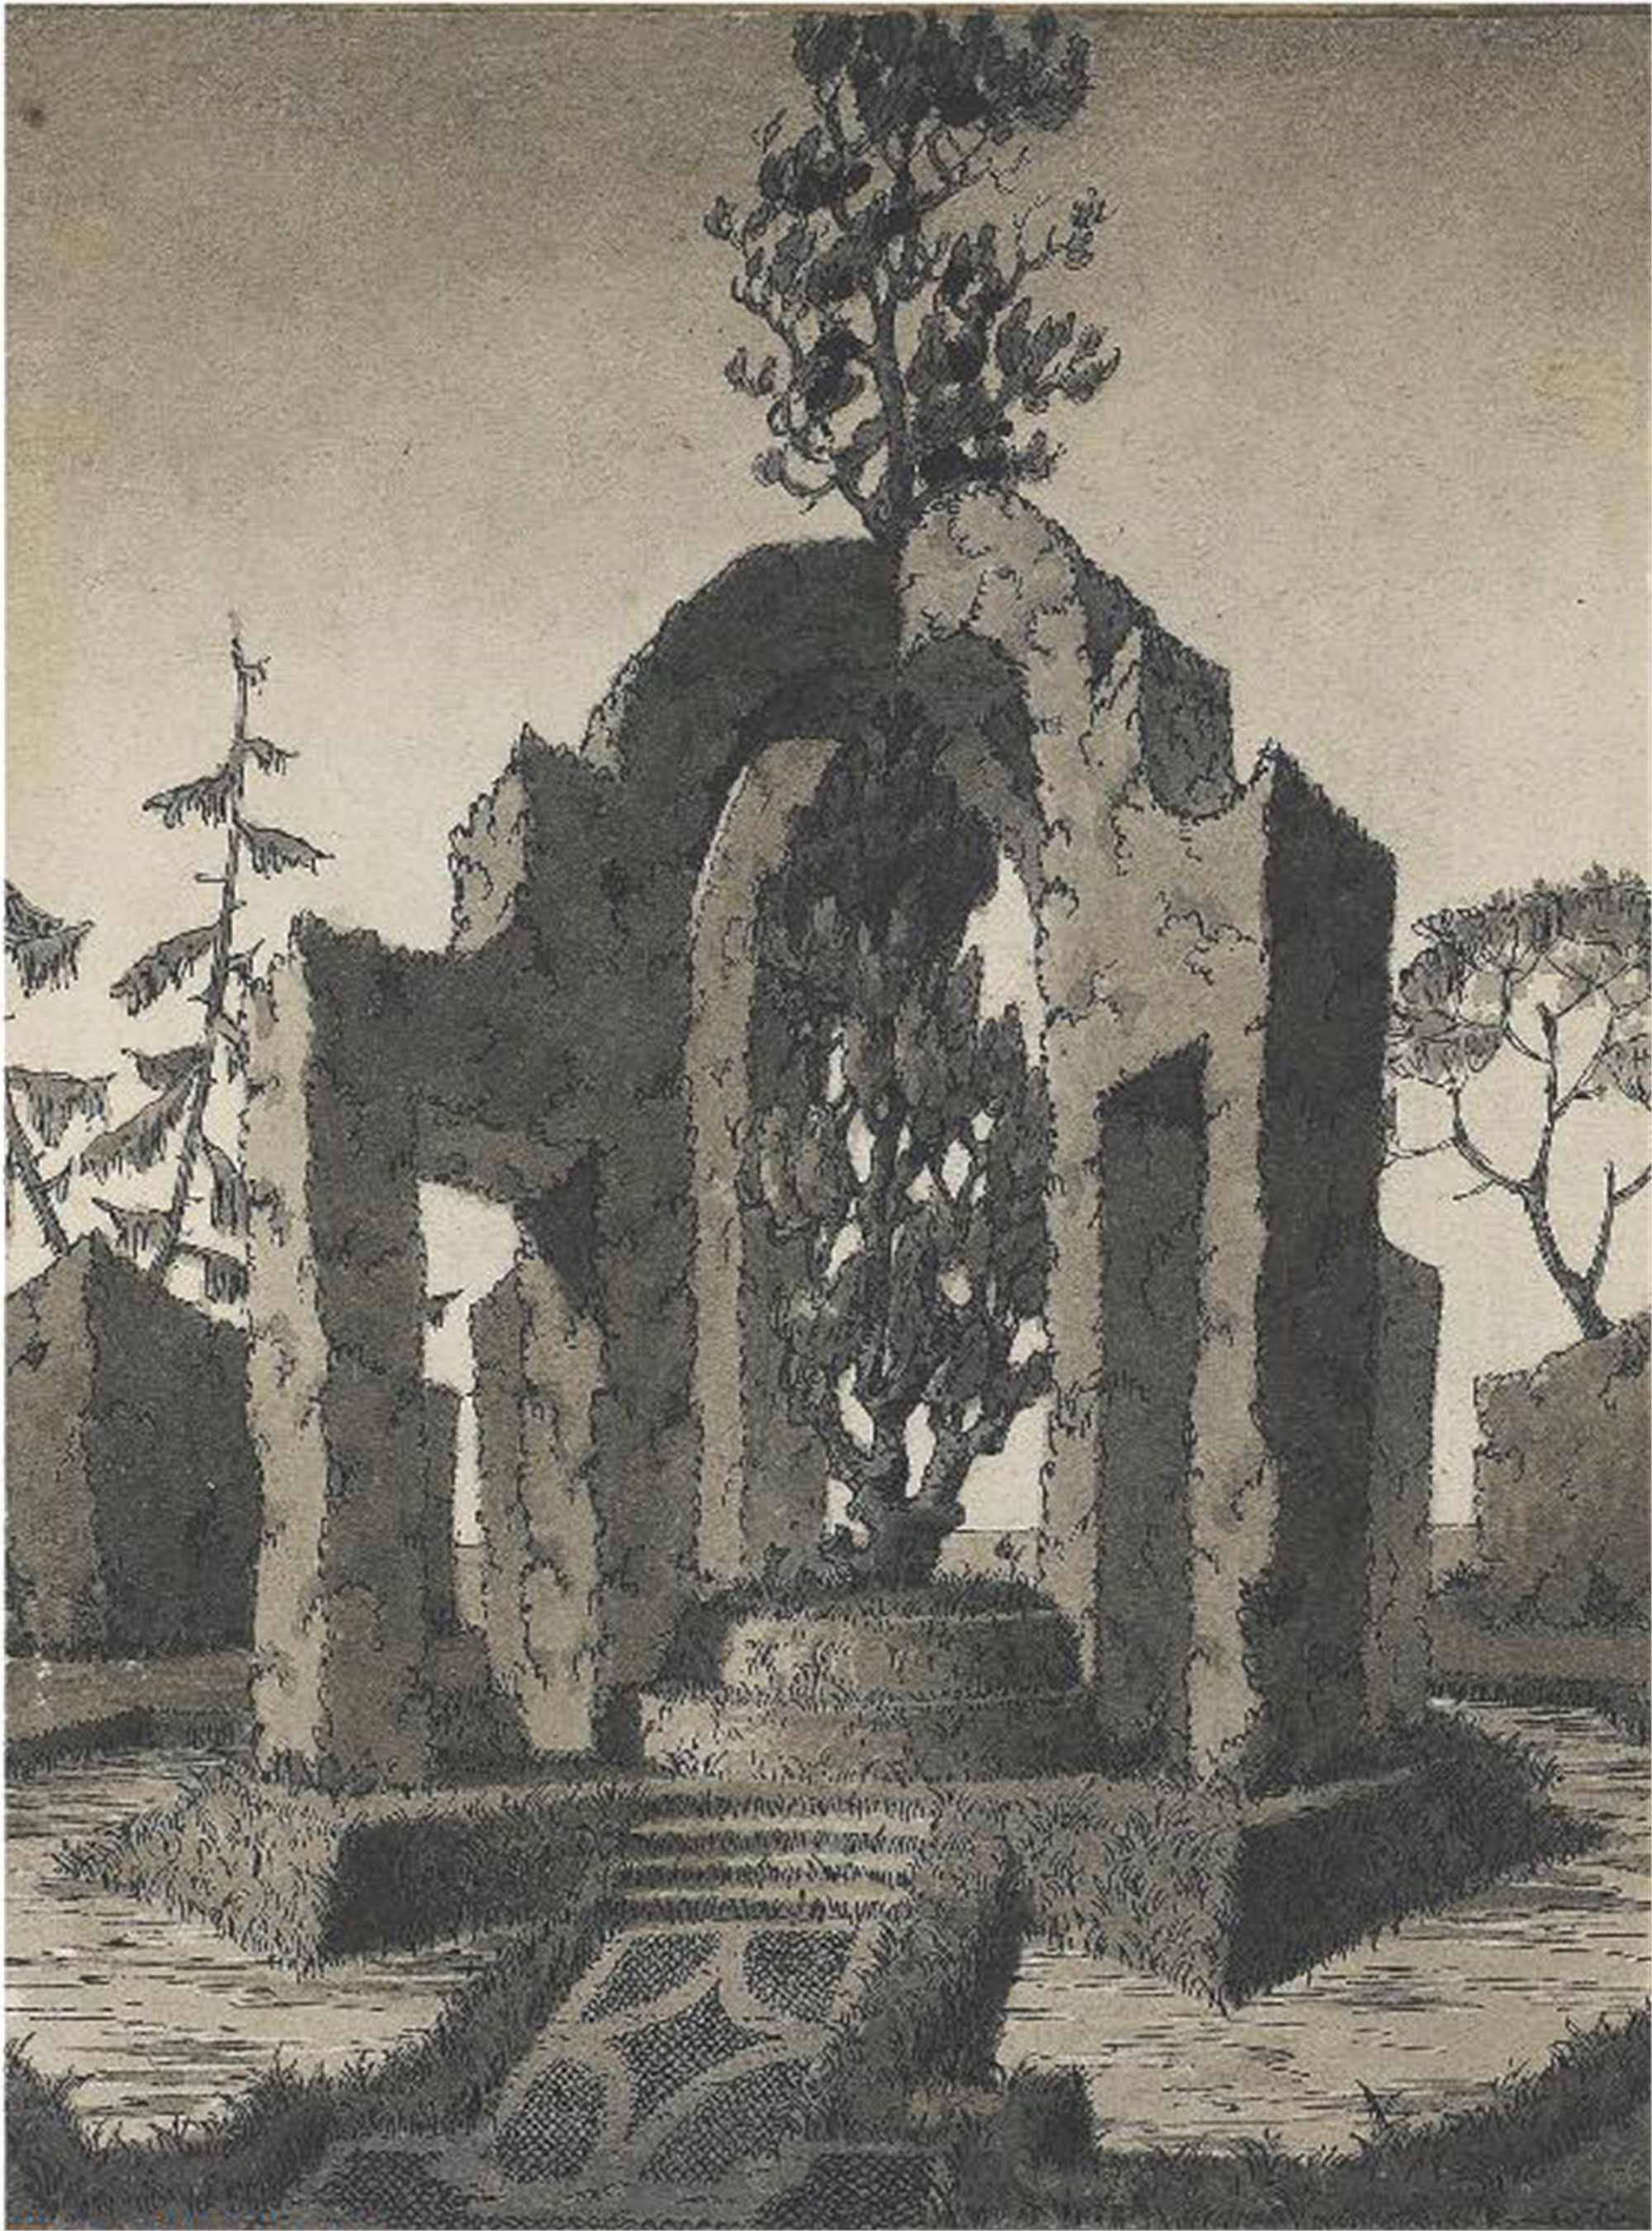 DRAWING OF A TOPIARY IN THE SHAPE OF AN ARCHED MONUMENT by Emilio Terry